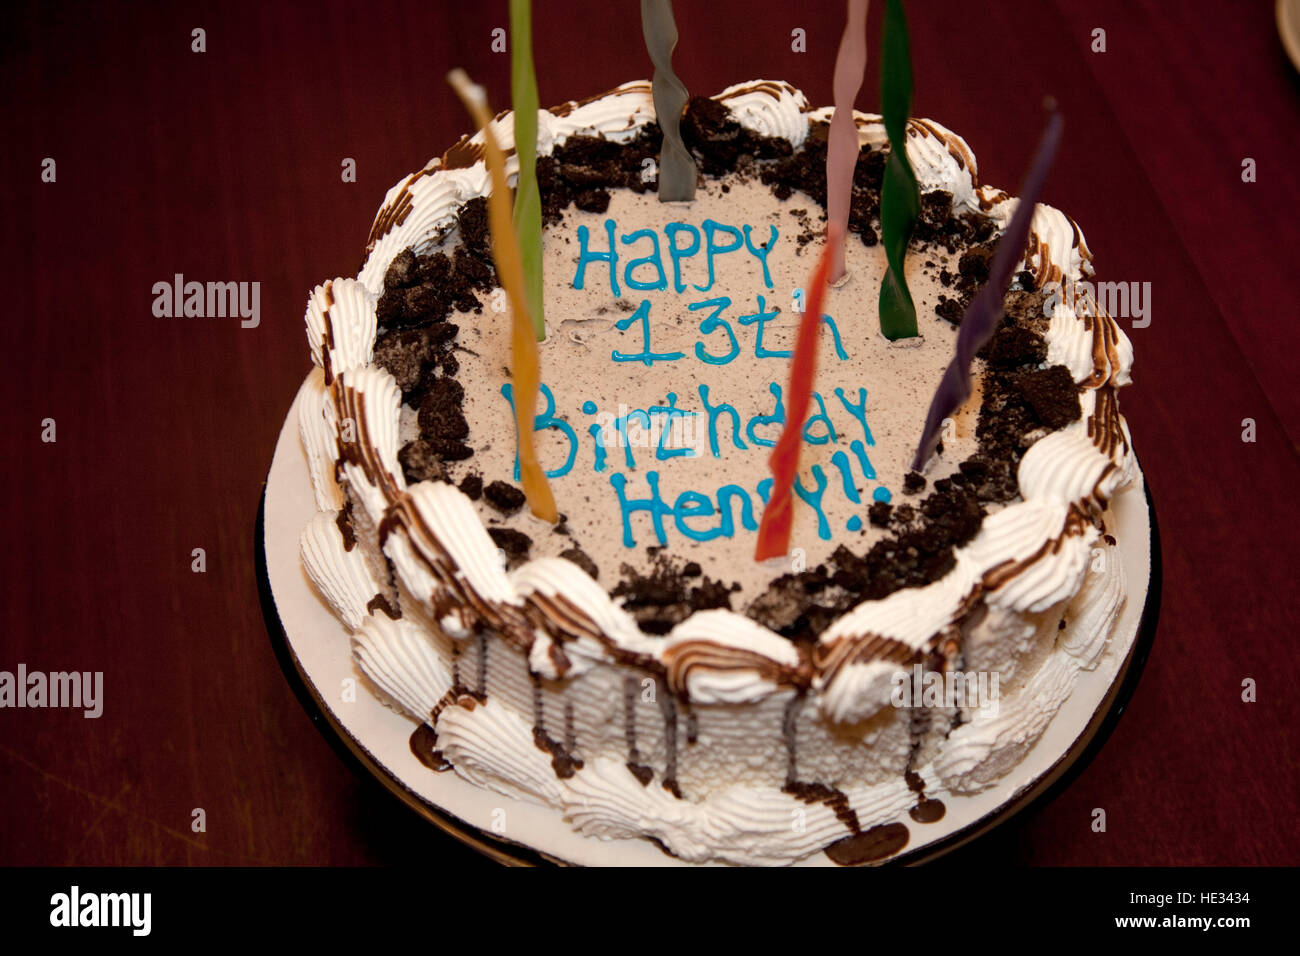 Decorative Happy Birthday Cake With Candles For A 13 Year Old Boy St Paul Minnesota MN USA